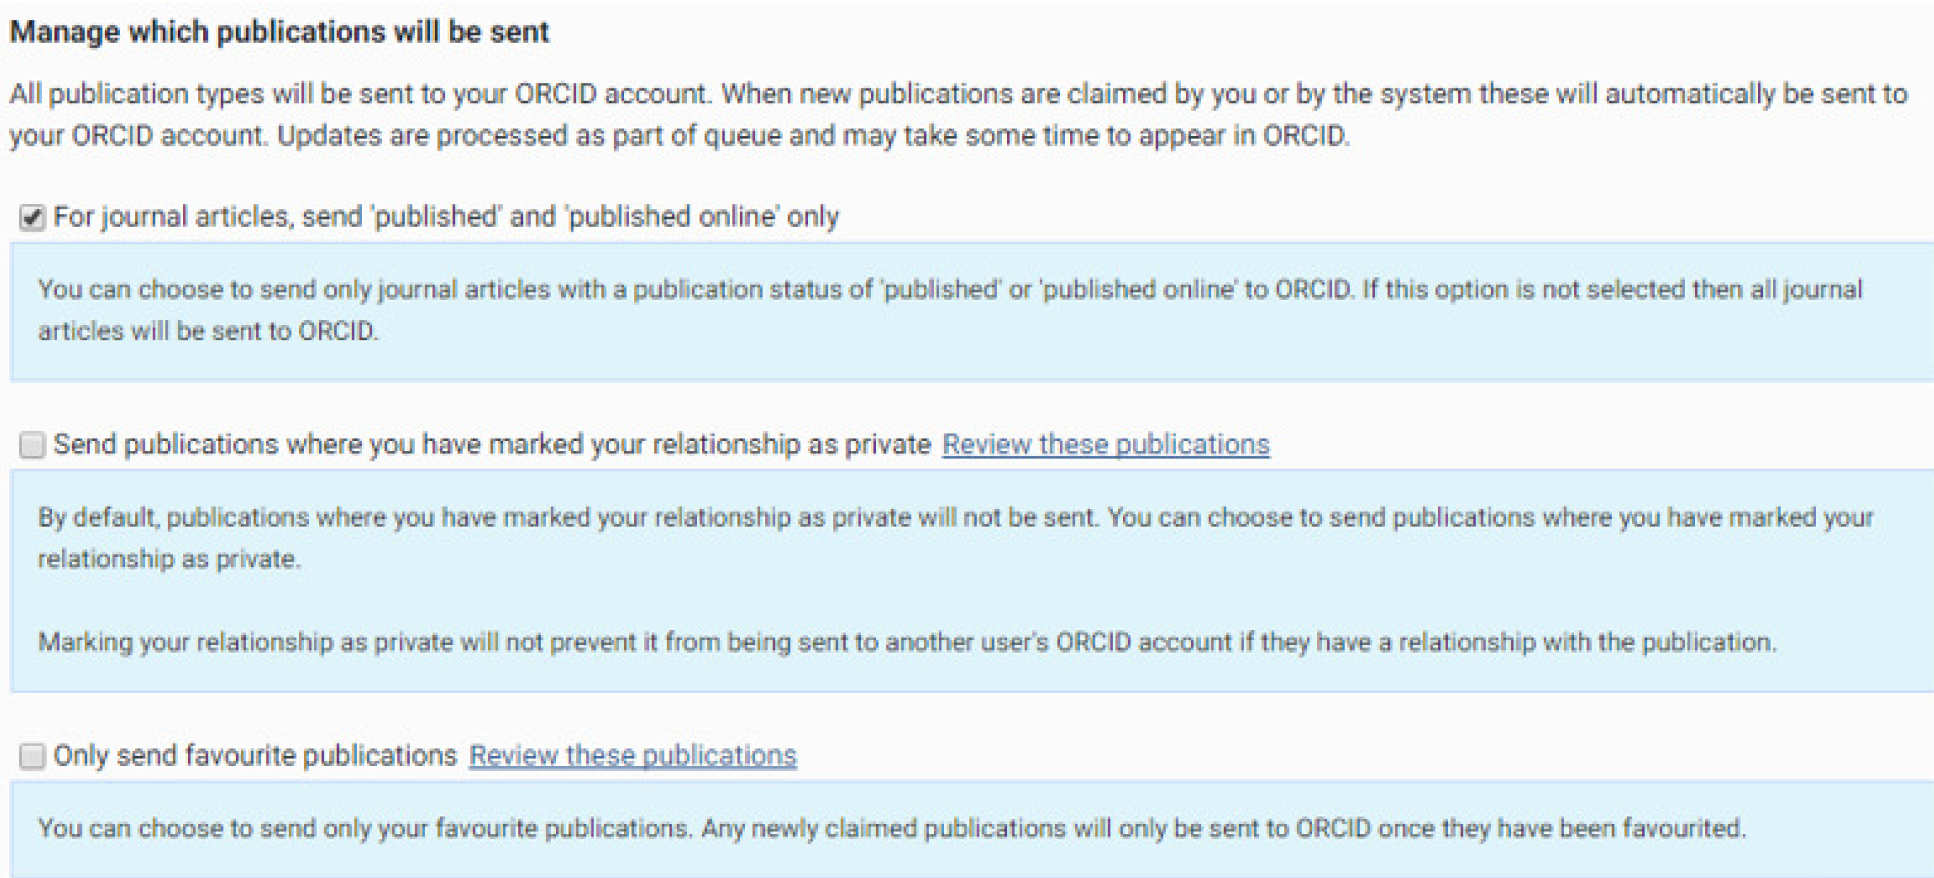 Manage which publications will be sent options displayed